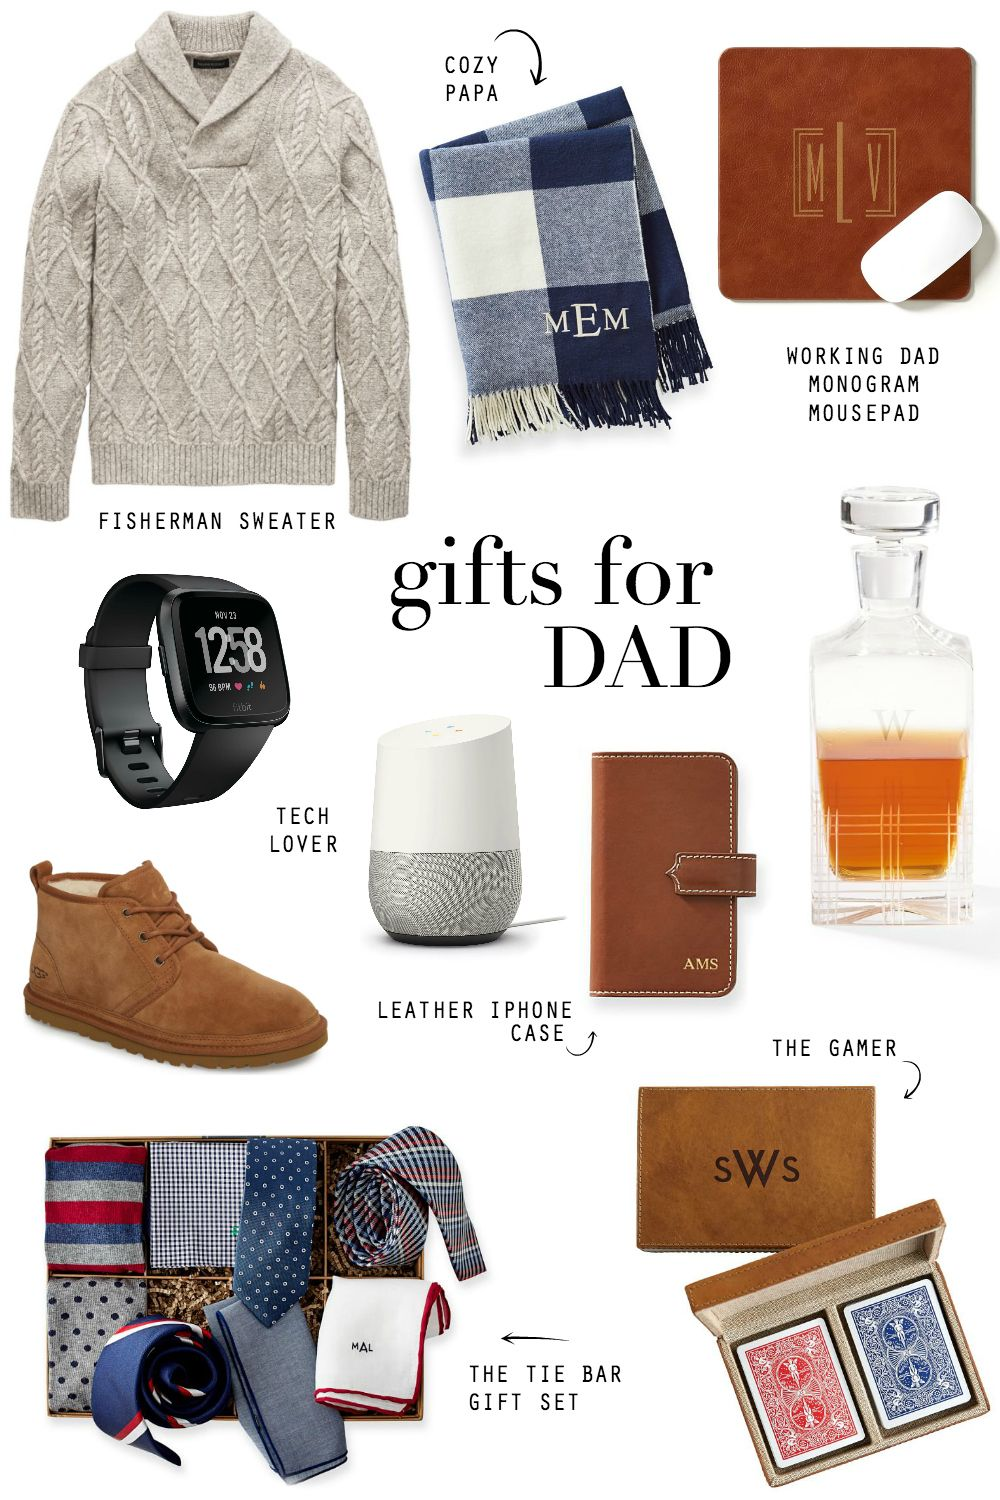 GIFTS FOR MOM & DAD | Dad holiday gifts, Gifts for mom ...